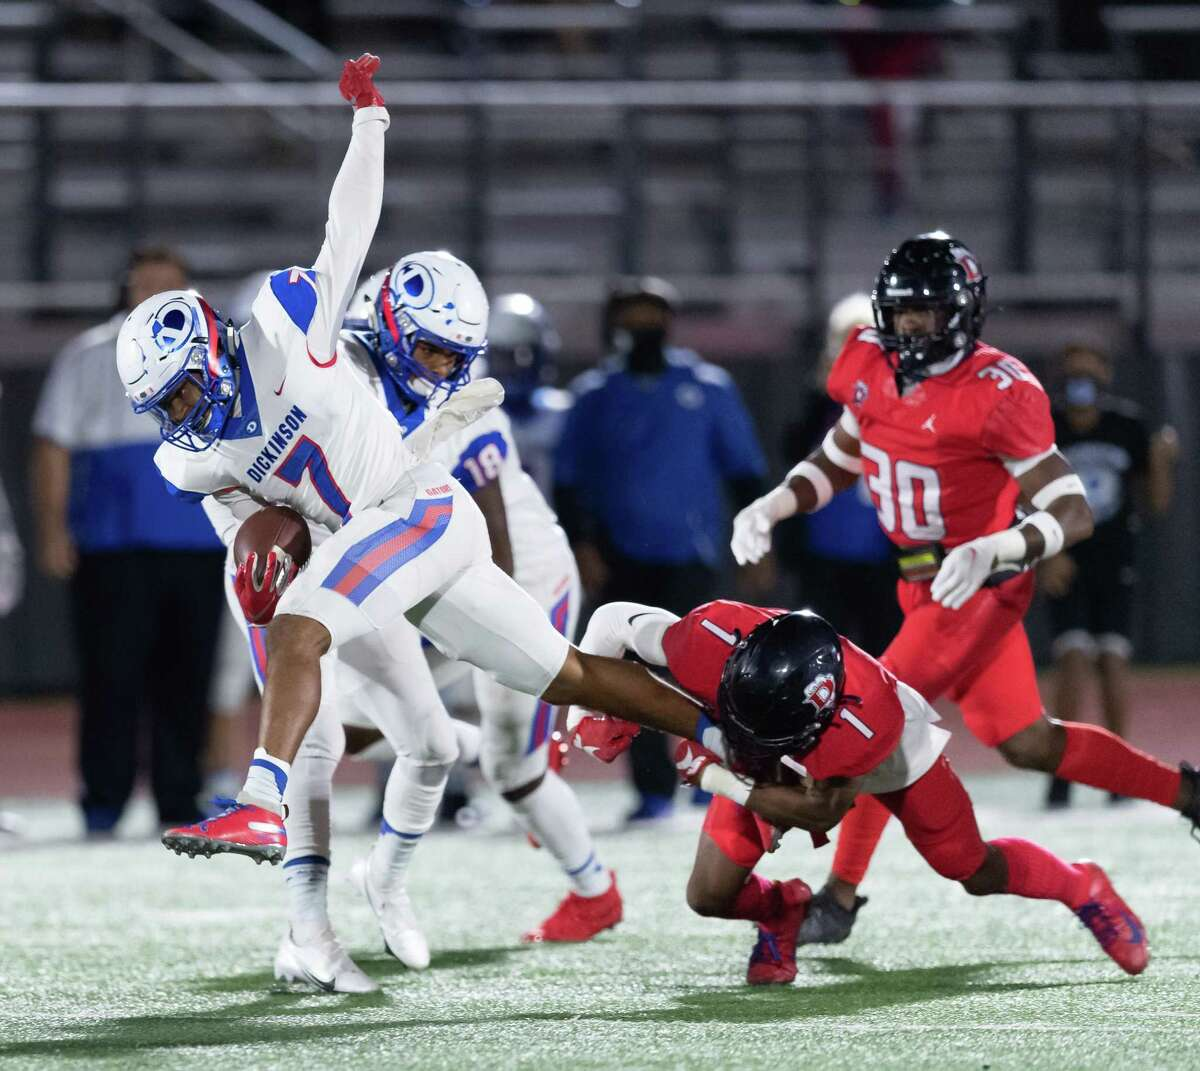 Waylon Presley (7) of the Dickinson Gators is brought down after a short gain in the first half by Blake Smith (1) of the Dawson Eagles during a High School bi-district playoff football game on Thursday, December 10, 2020 at Pearland ISD Stadium in Pearland, Texas.